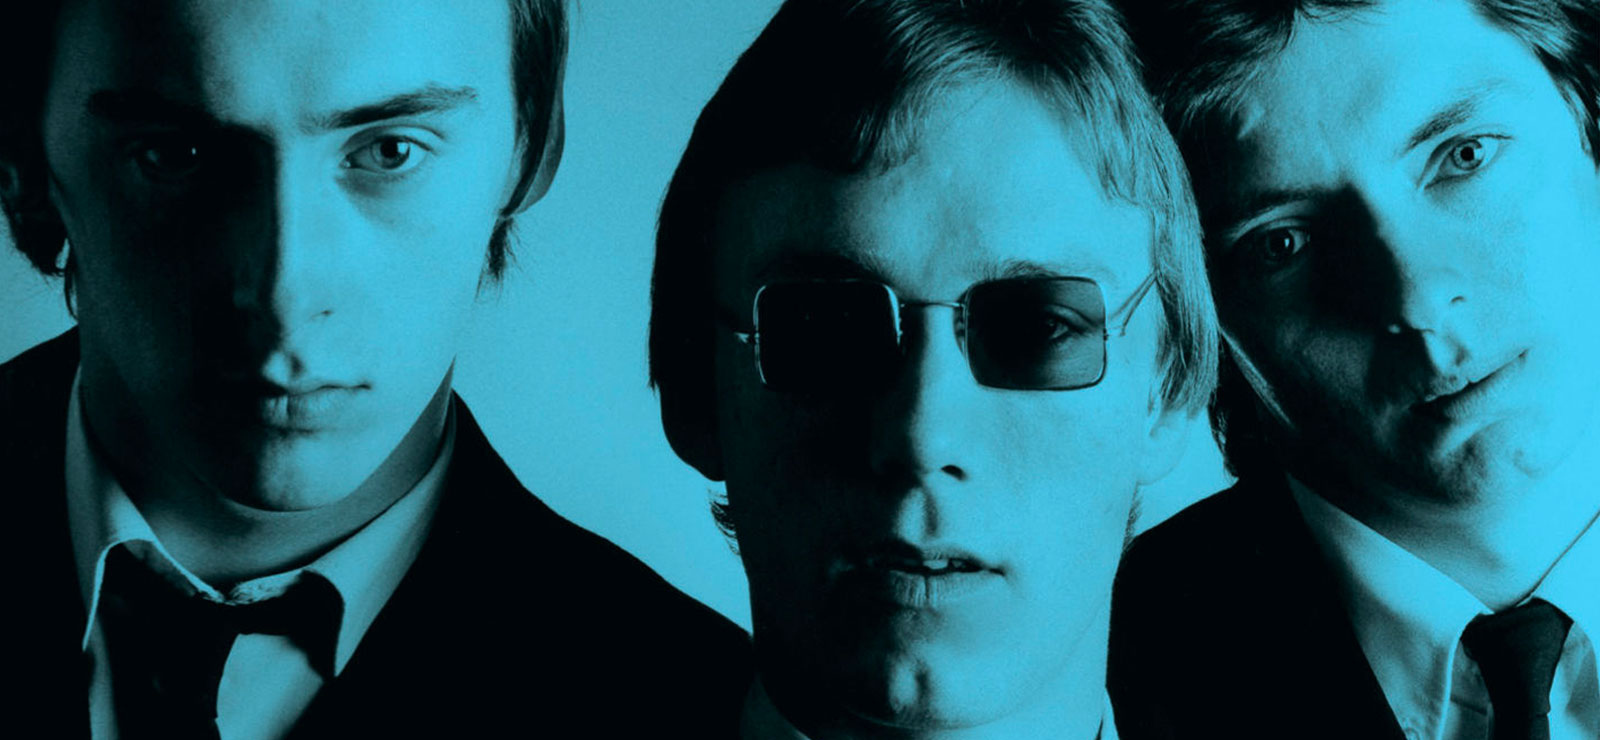 The Jam About A Young Idea